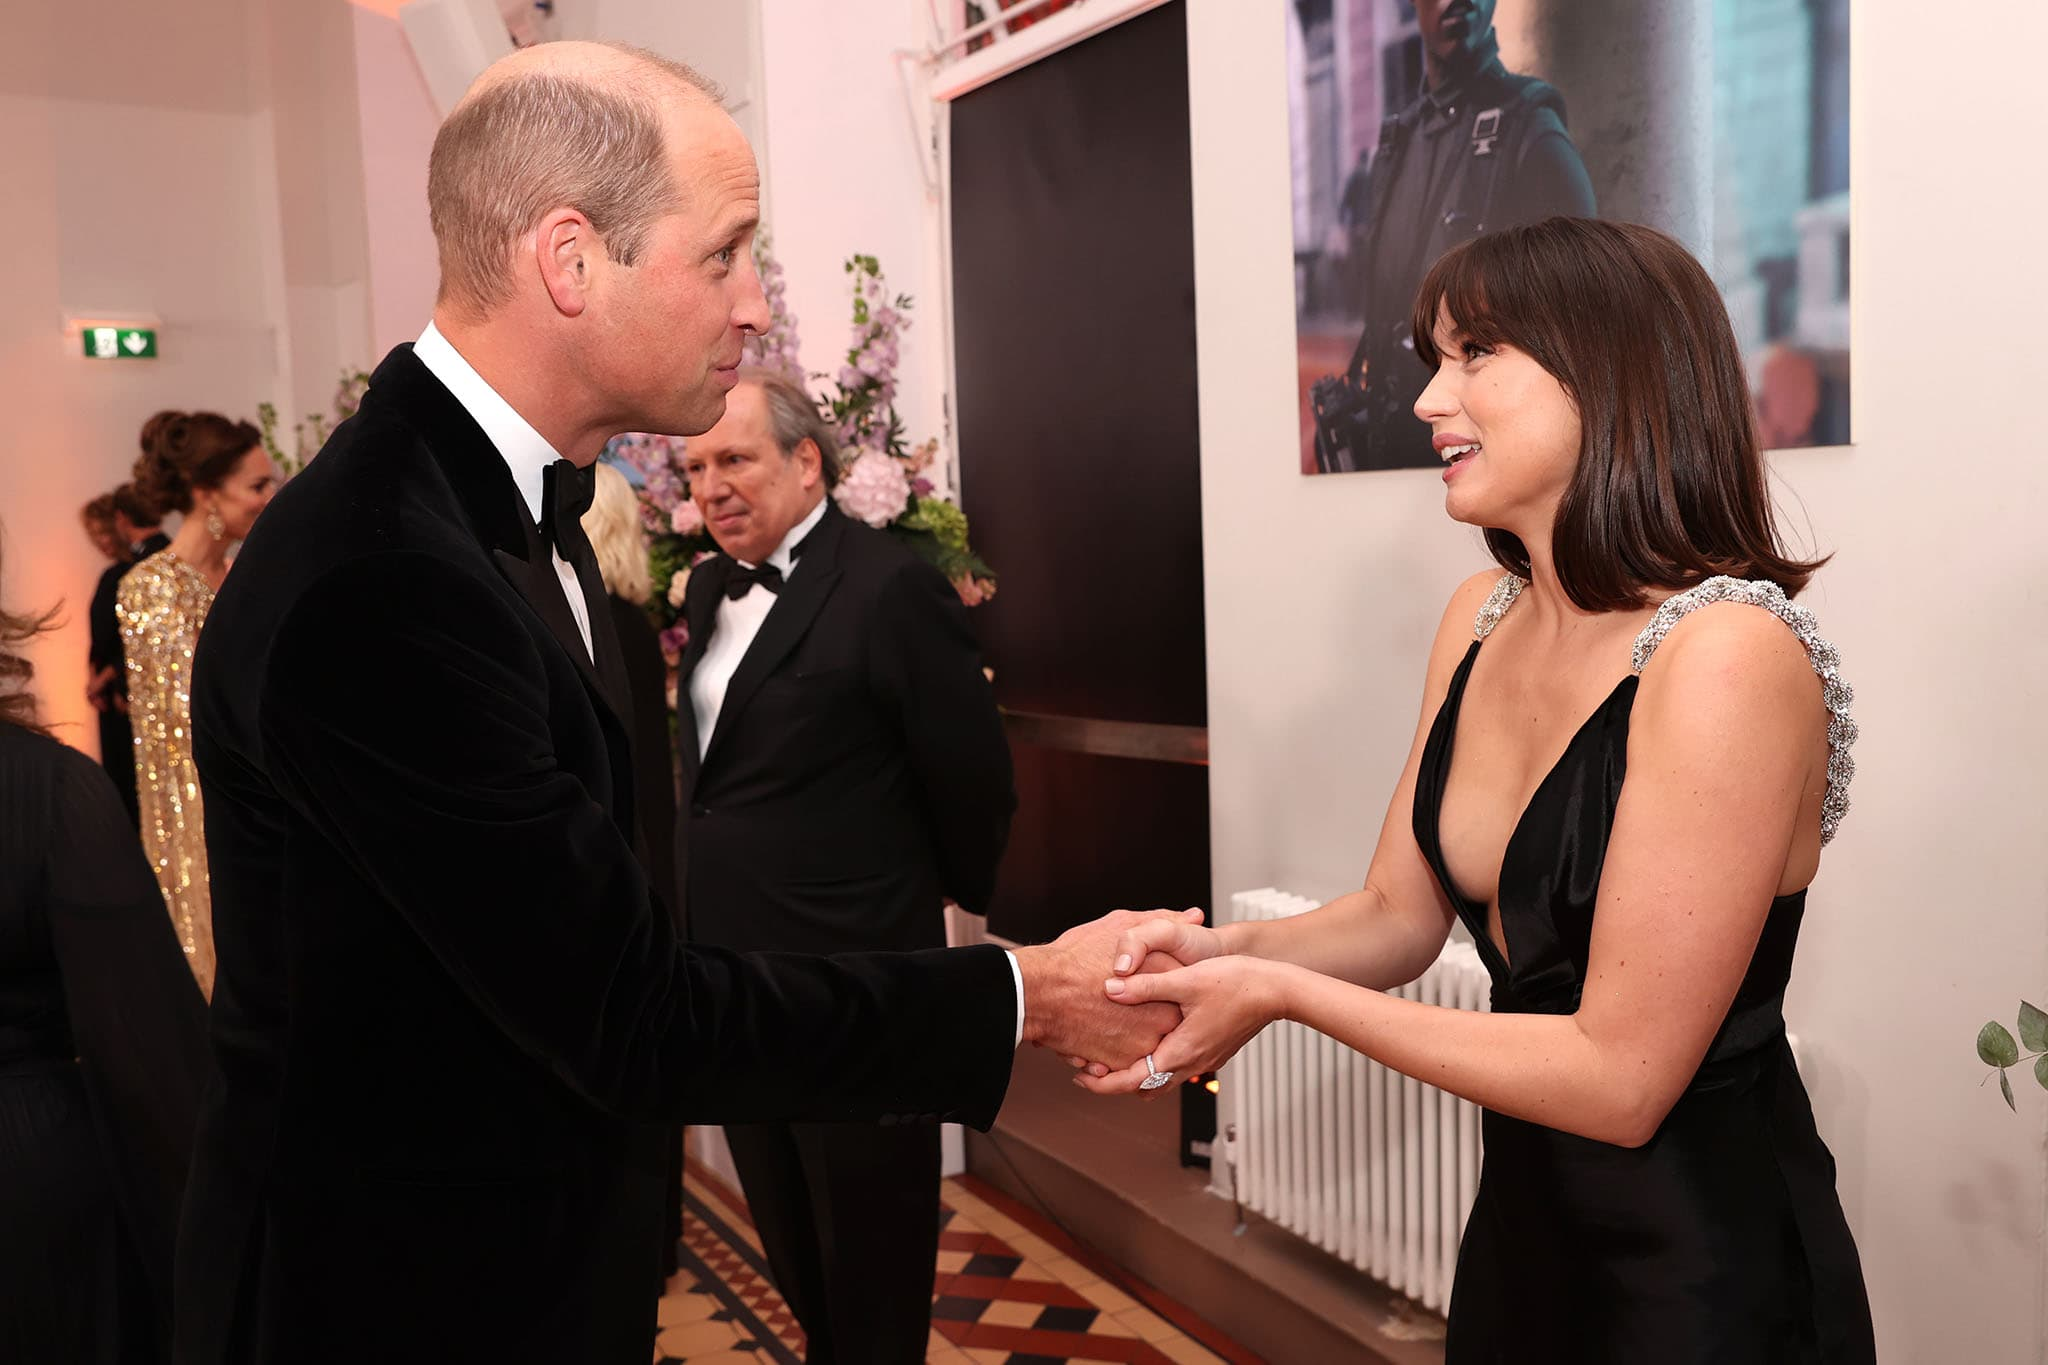 Prince William, Duke of Cambridge and Ana de Armas shake hands at the premiere of No Time to Die